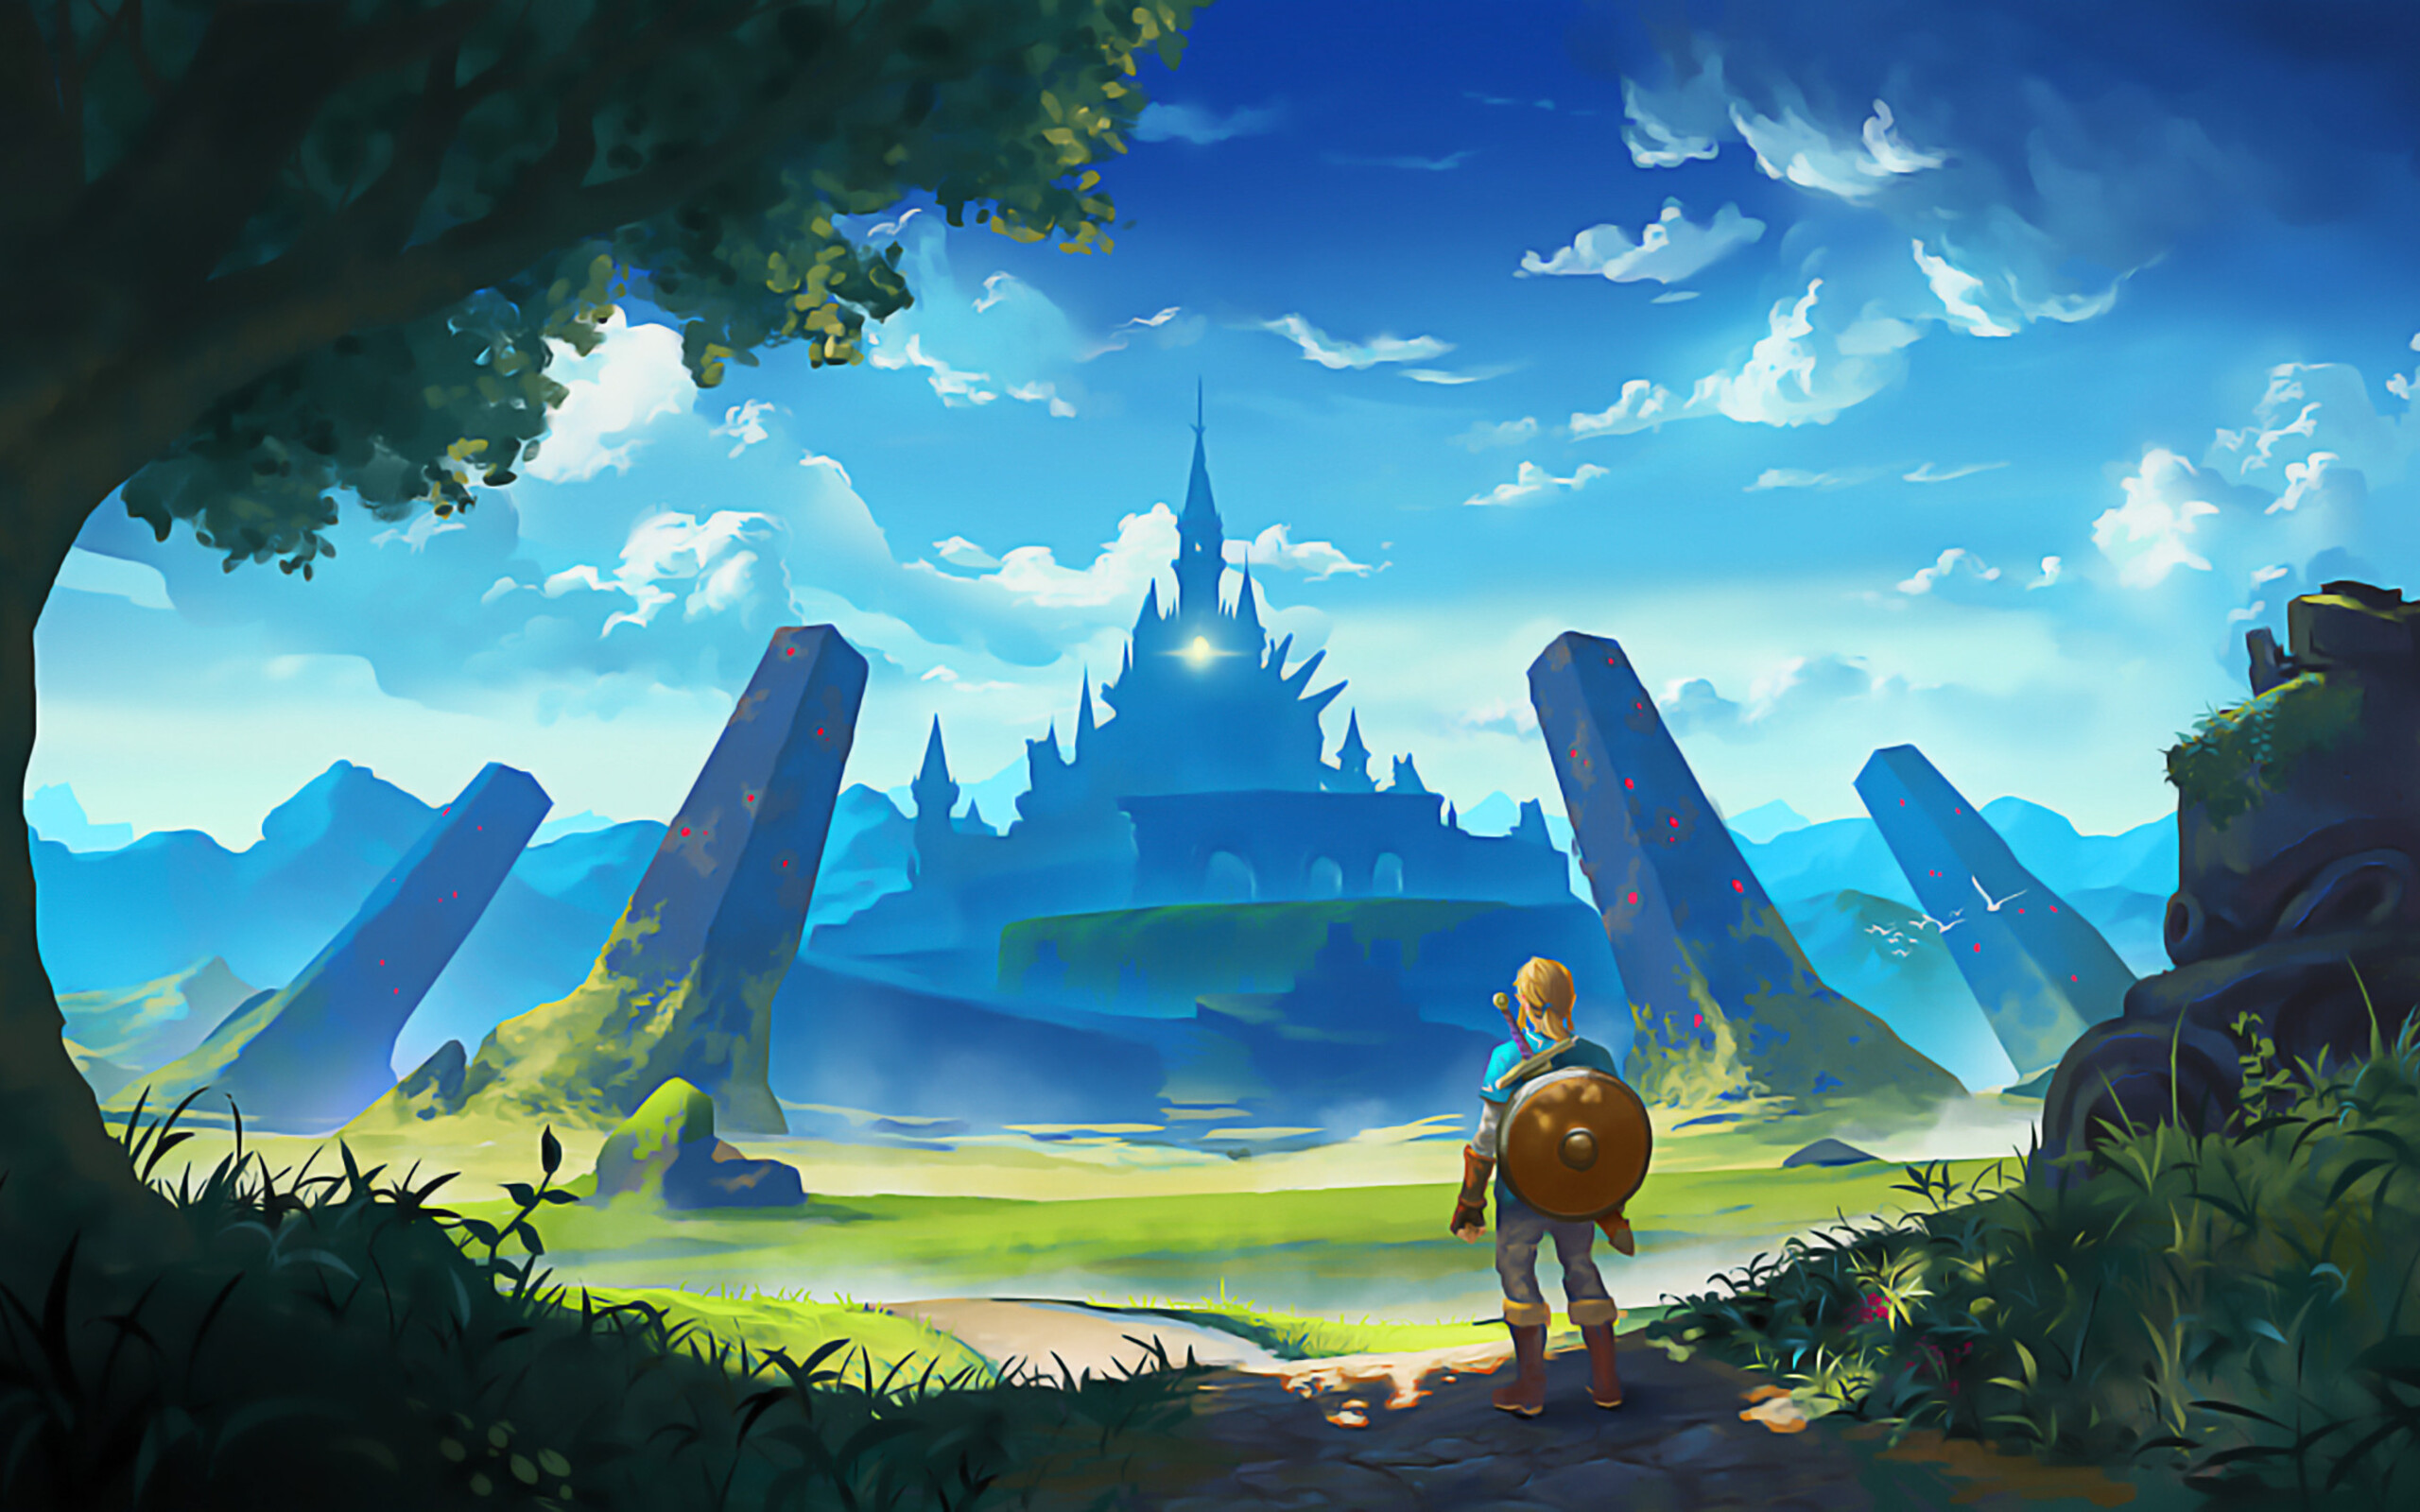 2560x1600 The Legend Of Zelda Breath Of The Wild Artworks 2560x1600 Resolution Hd 4k Wallpapers Images Backgrounds Photos And Pictures